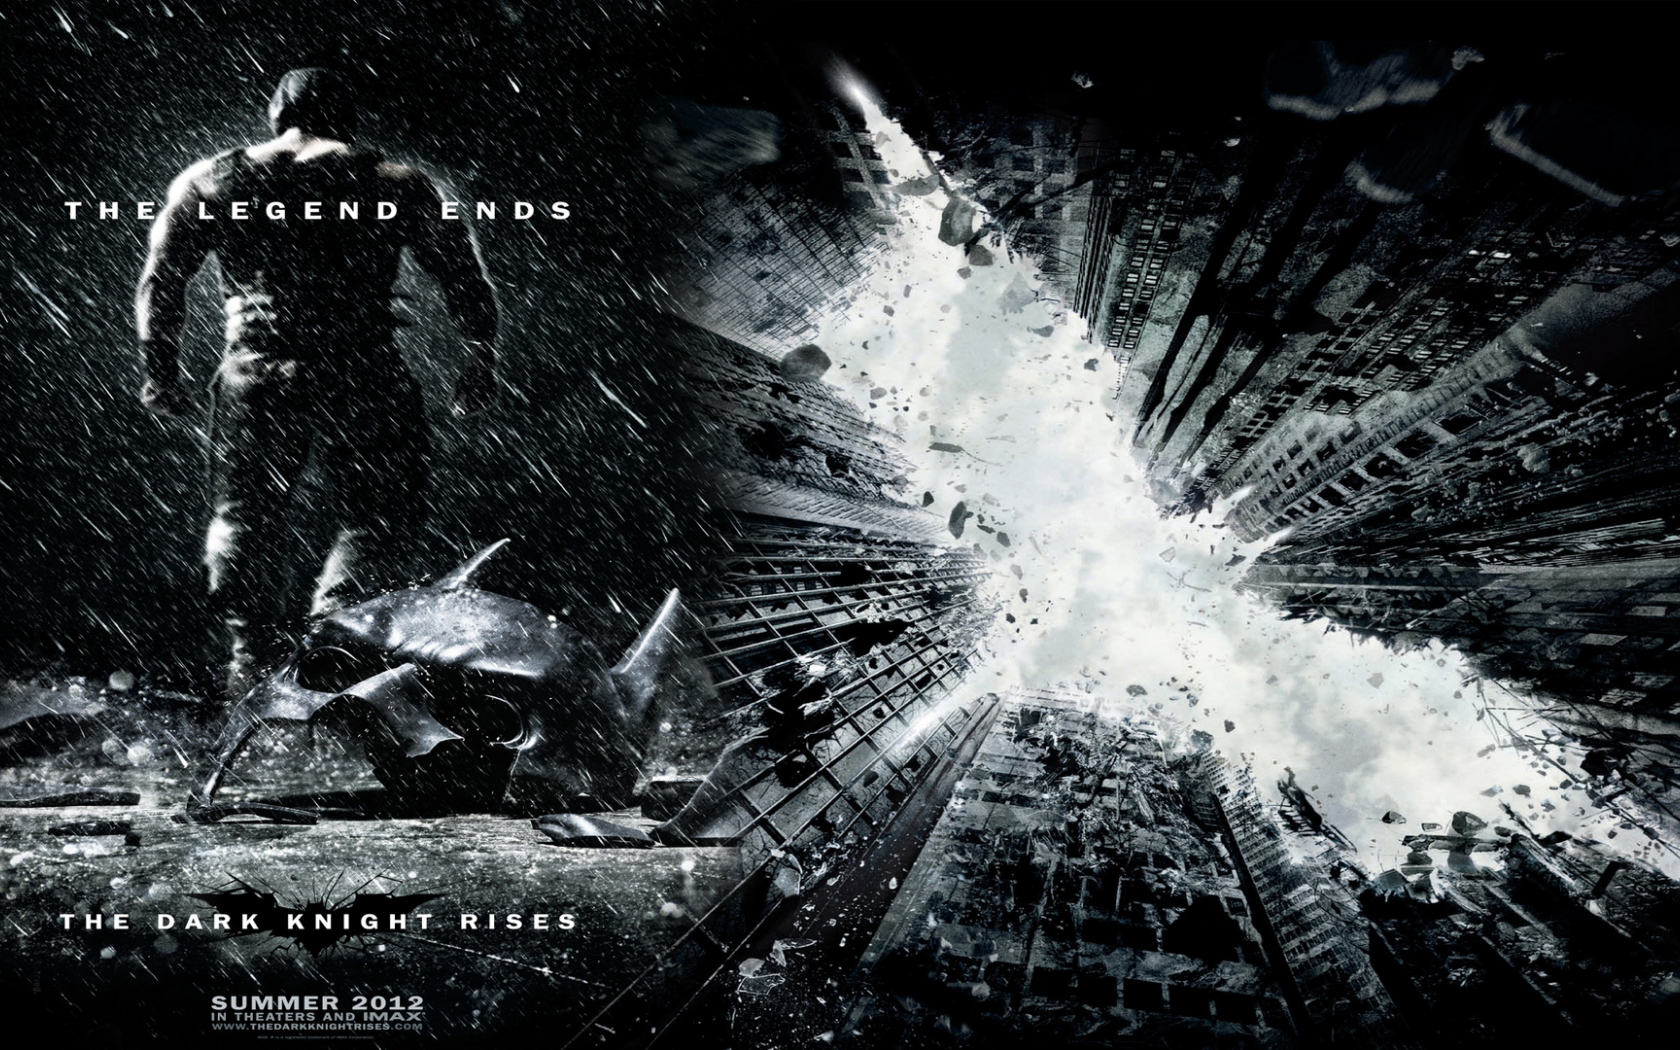 Free Download Dark Knight Rises Wallpaper Hd 1920x1080 For Your